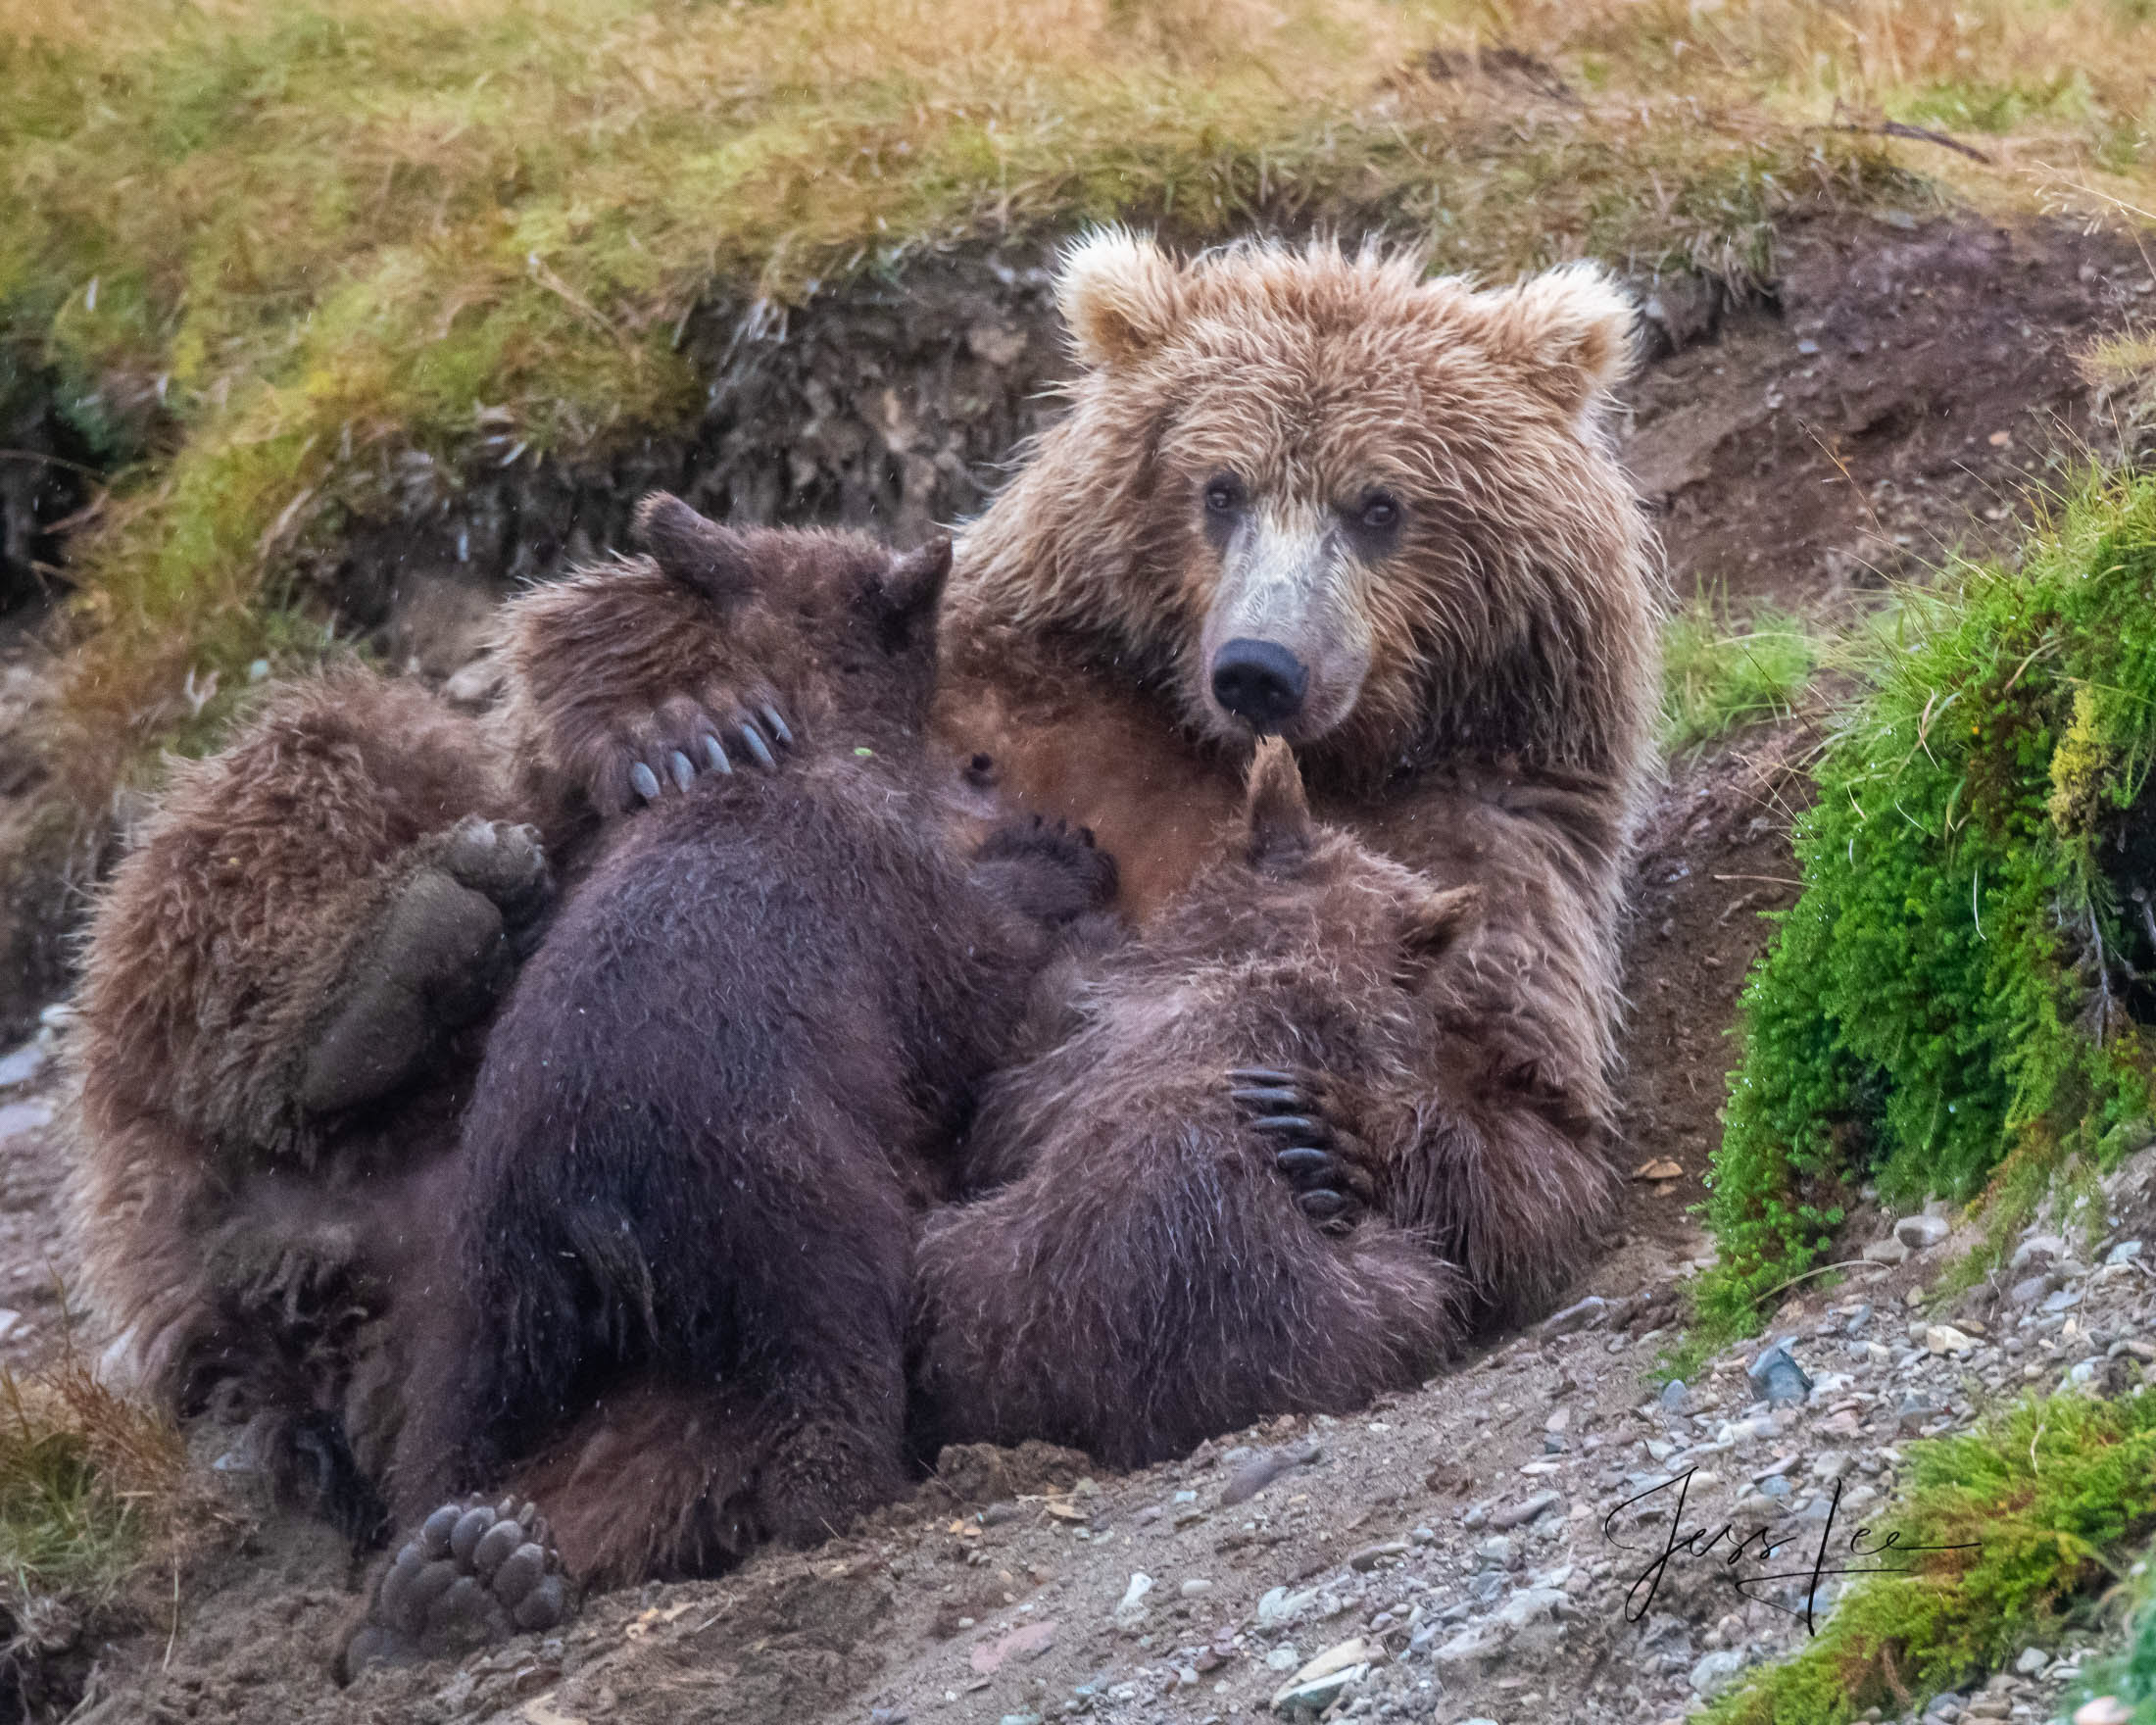 A Limited Edition picture of a mother Grizzly bear with cubs. A Limited Edition of 500 prints.